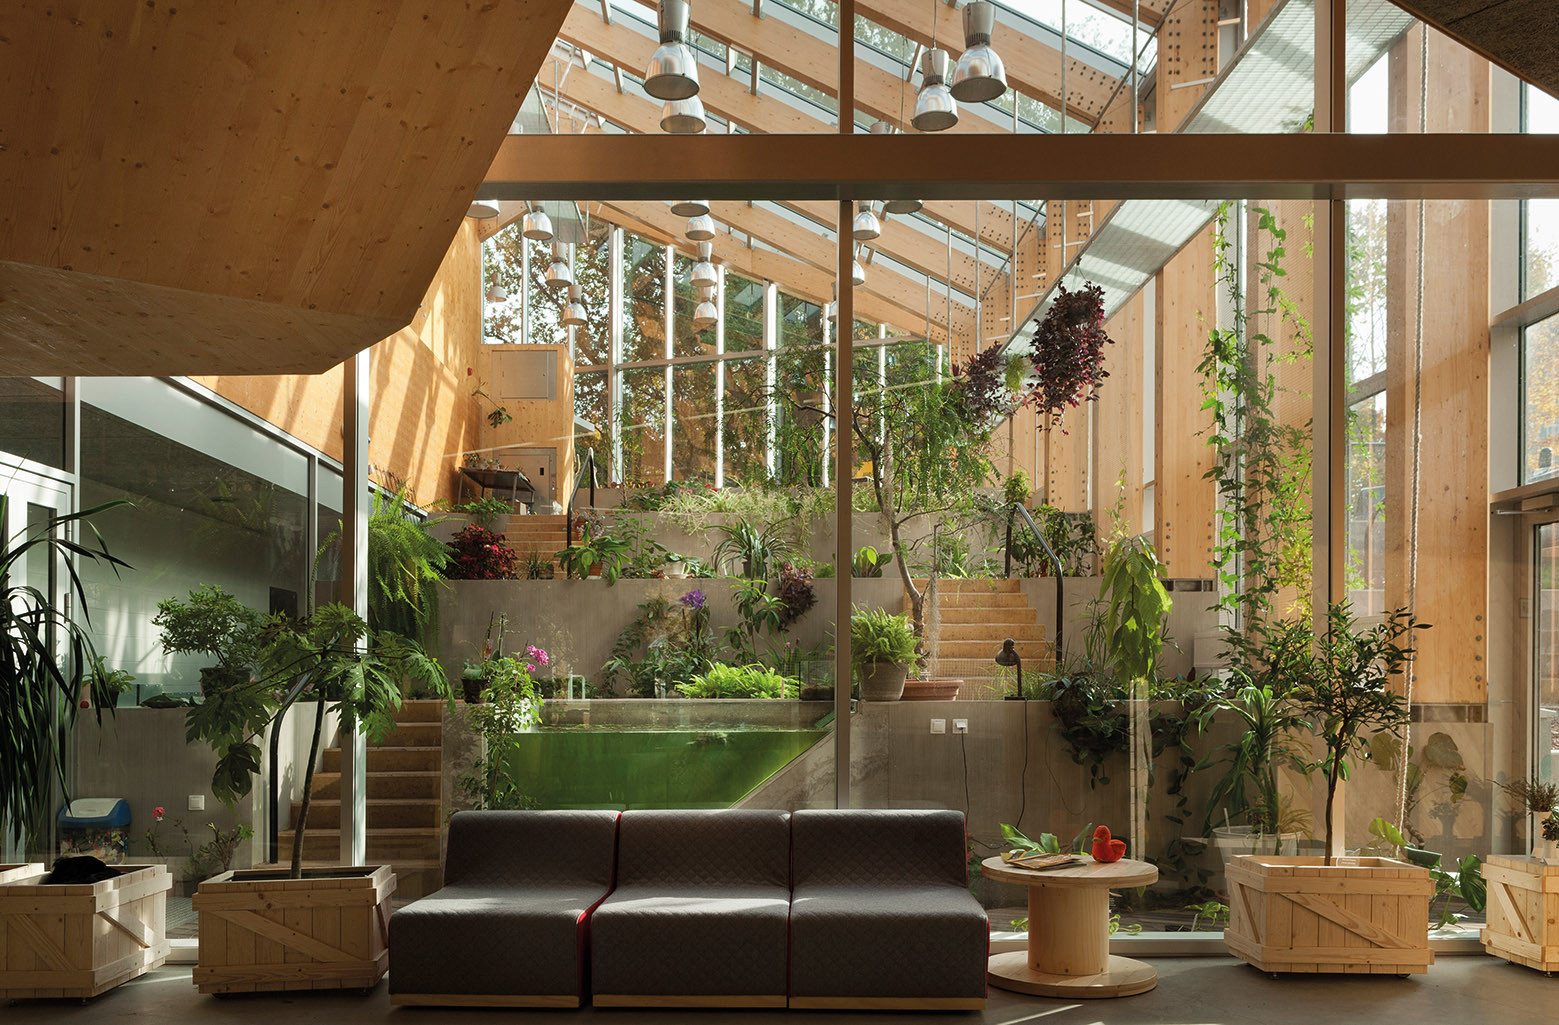 Gallery of tartu nature house karisma architects 8 for Indoor nature design challenge